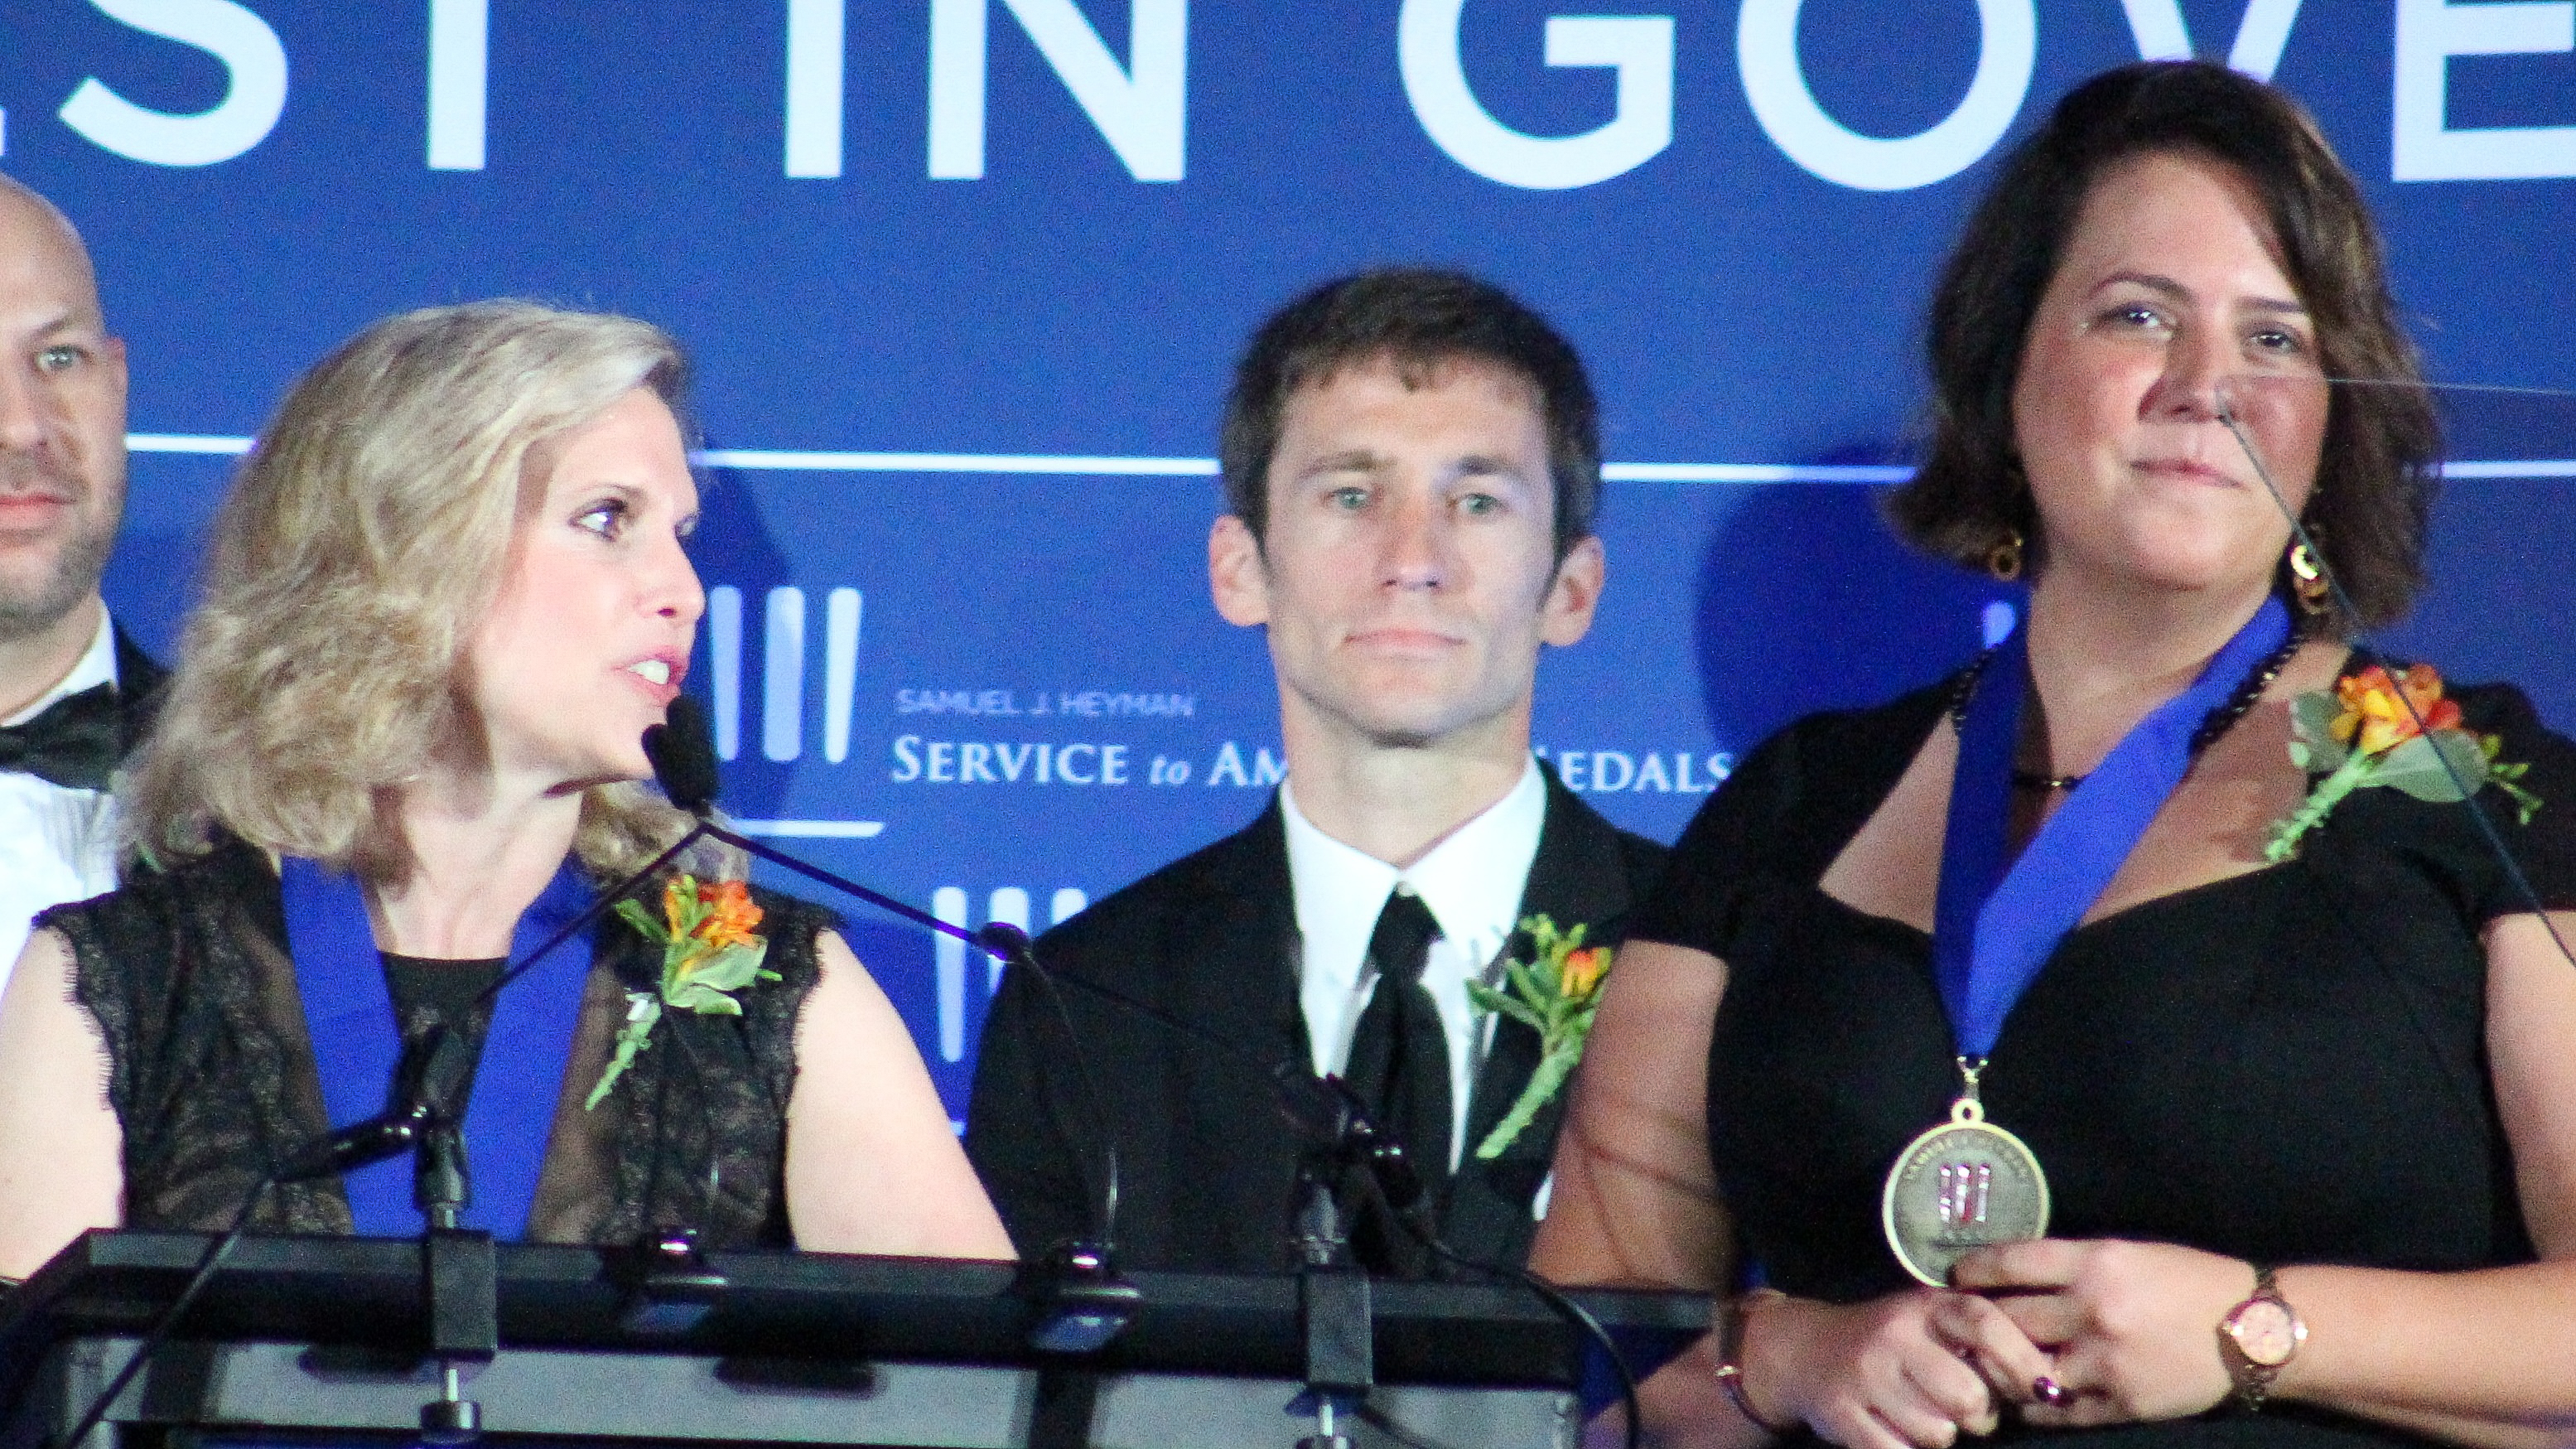 Karen Dodge, staff attorney at the Federal Trade Commission, and Margaret Moeser, senior trial attorney at the Department of Justice, accept the Homeland Security and Law Enforcement Medal at the 2018 Sammies Gala. (Jessie Bur/Staff)